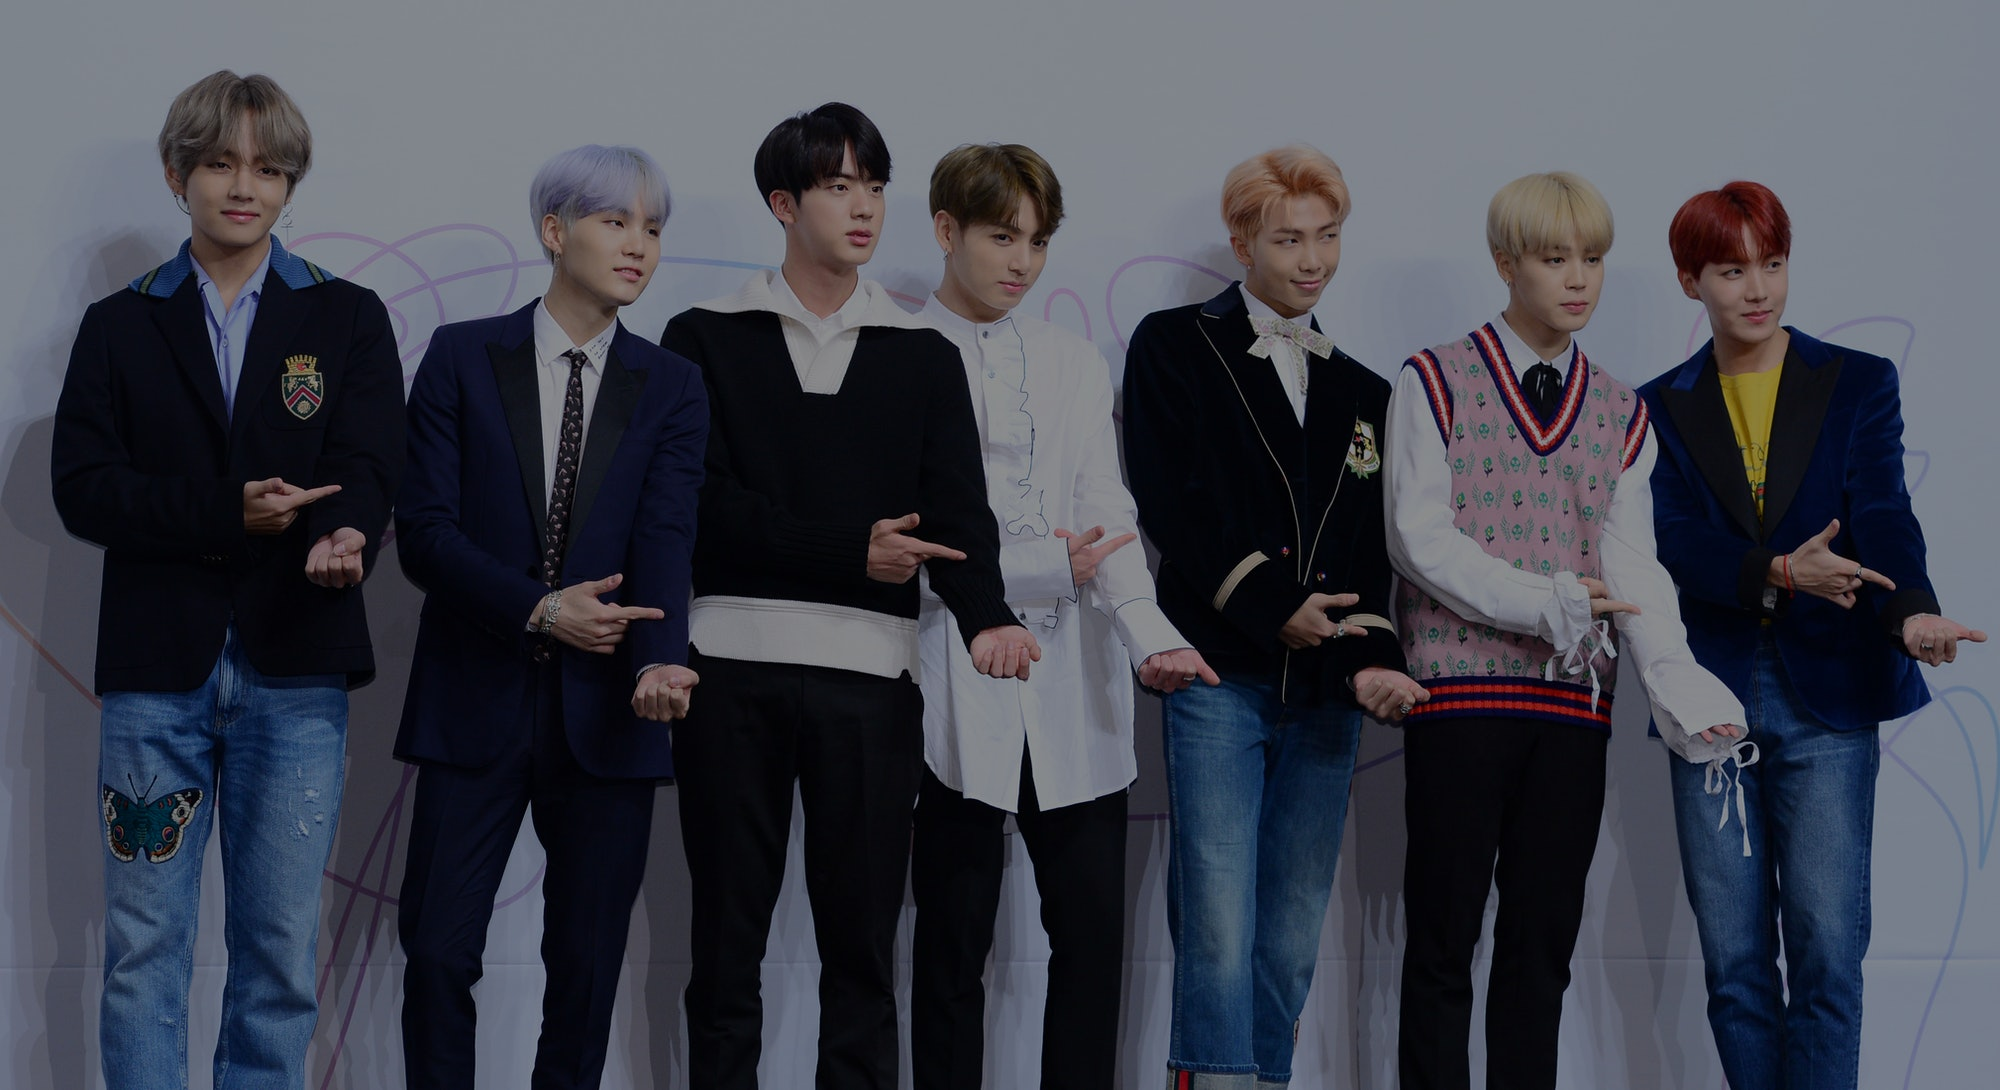 SEOUL, SOUTH KOREA - SEPTEMBER 18: BTS attend the press conference for BTS's New Album 'LOVE YOURSELF: Her' release at Lotte Hotel Seoul on September 18, 2017 in Seoul, South Korea. (Photo by THE FACT/Imazins via Getty Images)